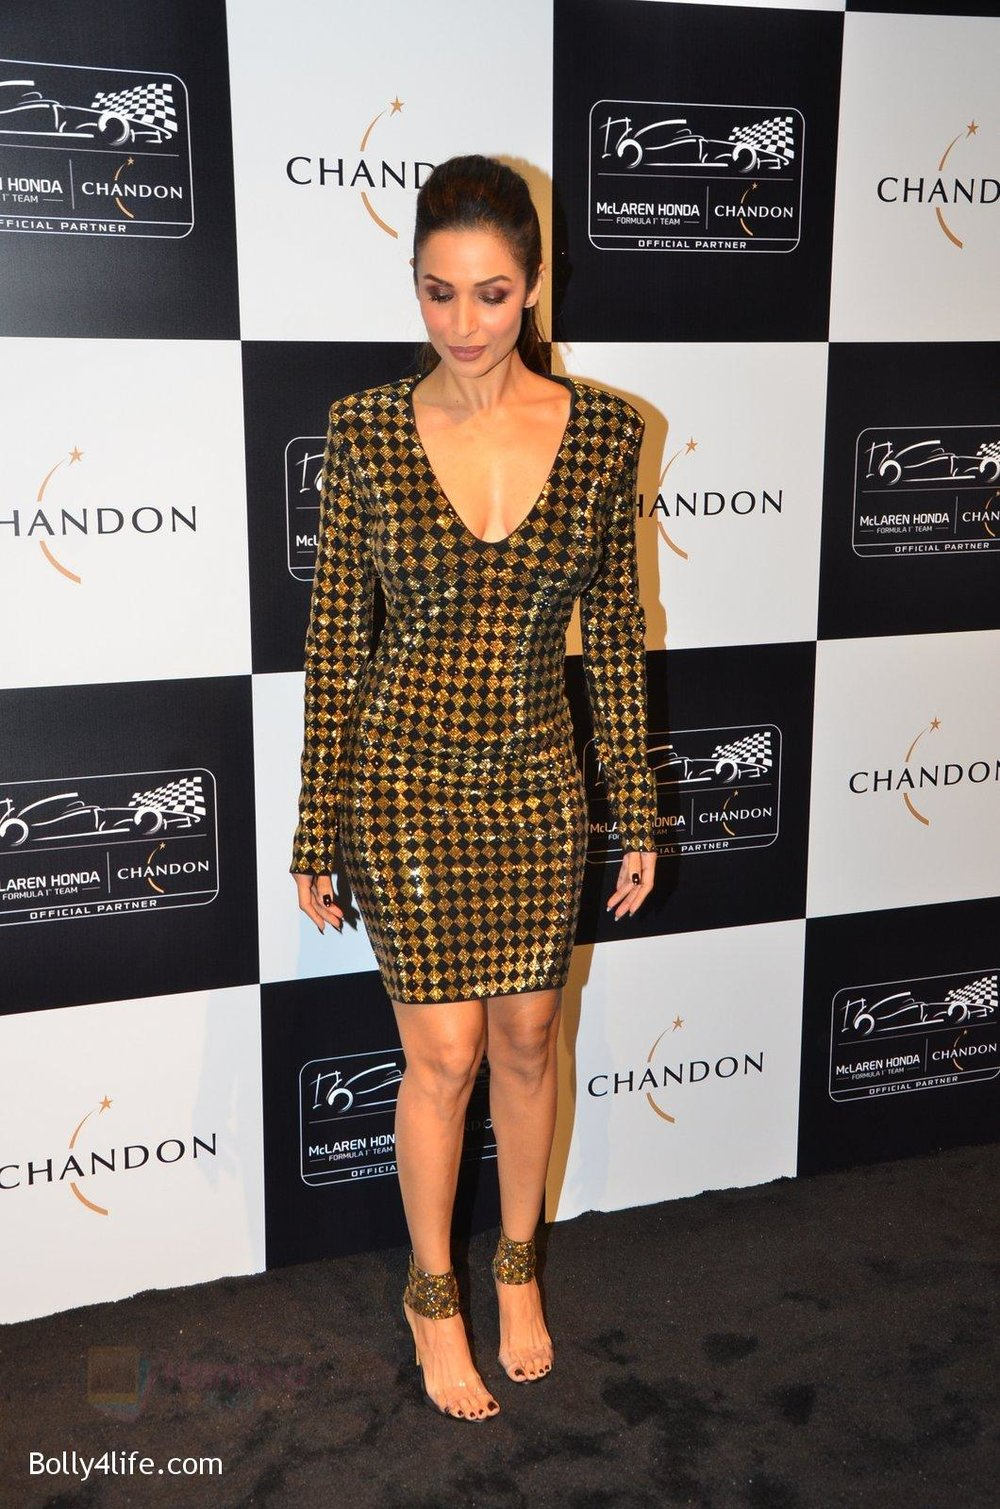 Malaika-Arora-Khan-at-the-unveiling-Chandon-X-McLaren-Honda-installation-in-Mumbai-on-9th-Sept-2016-23.jpg